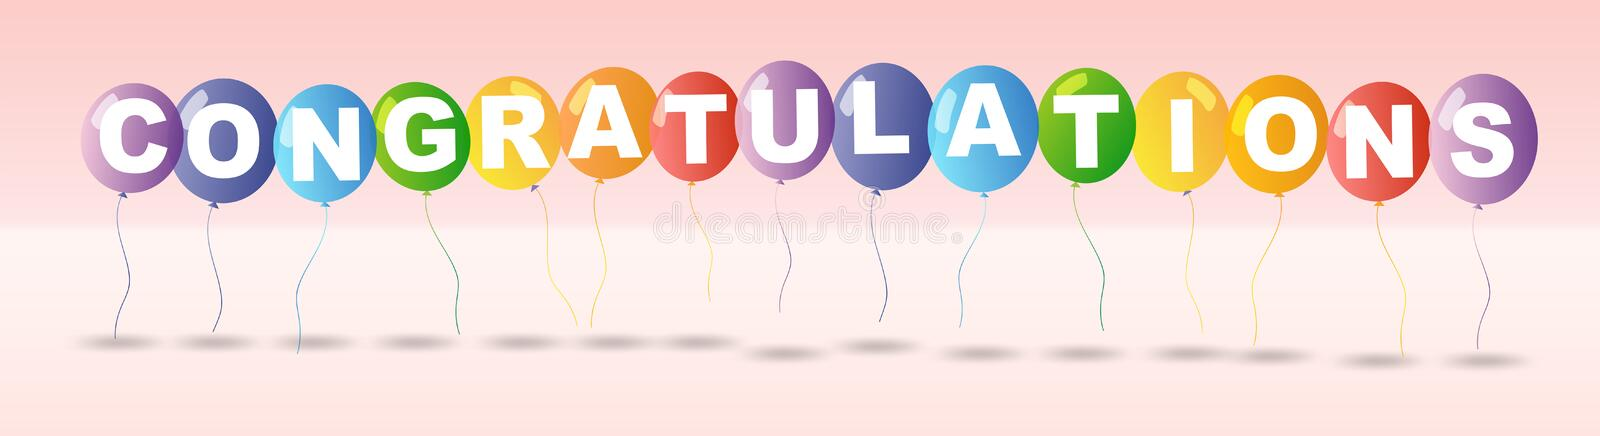 Congratulations card template with colorful balloons. Illustration stock illustration